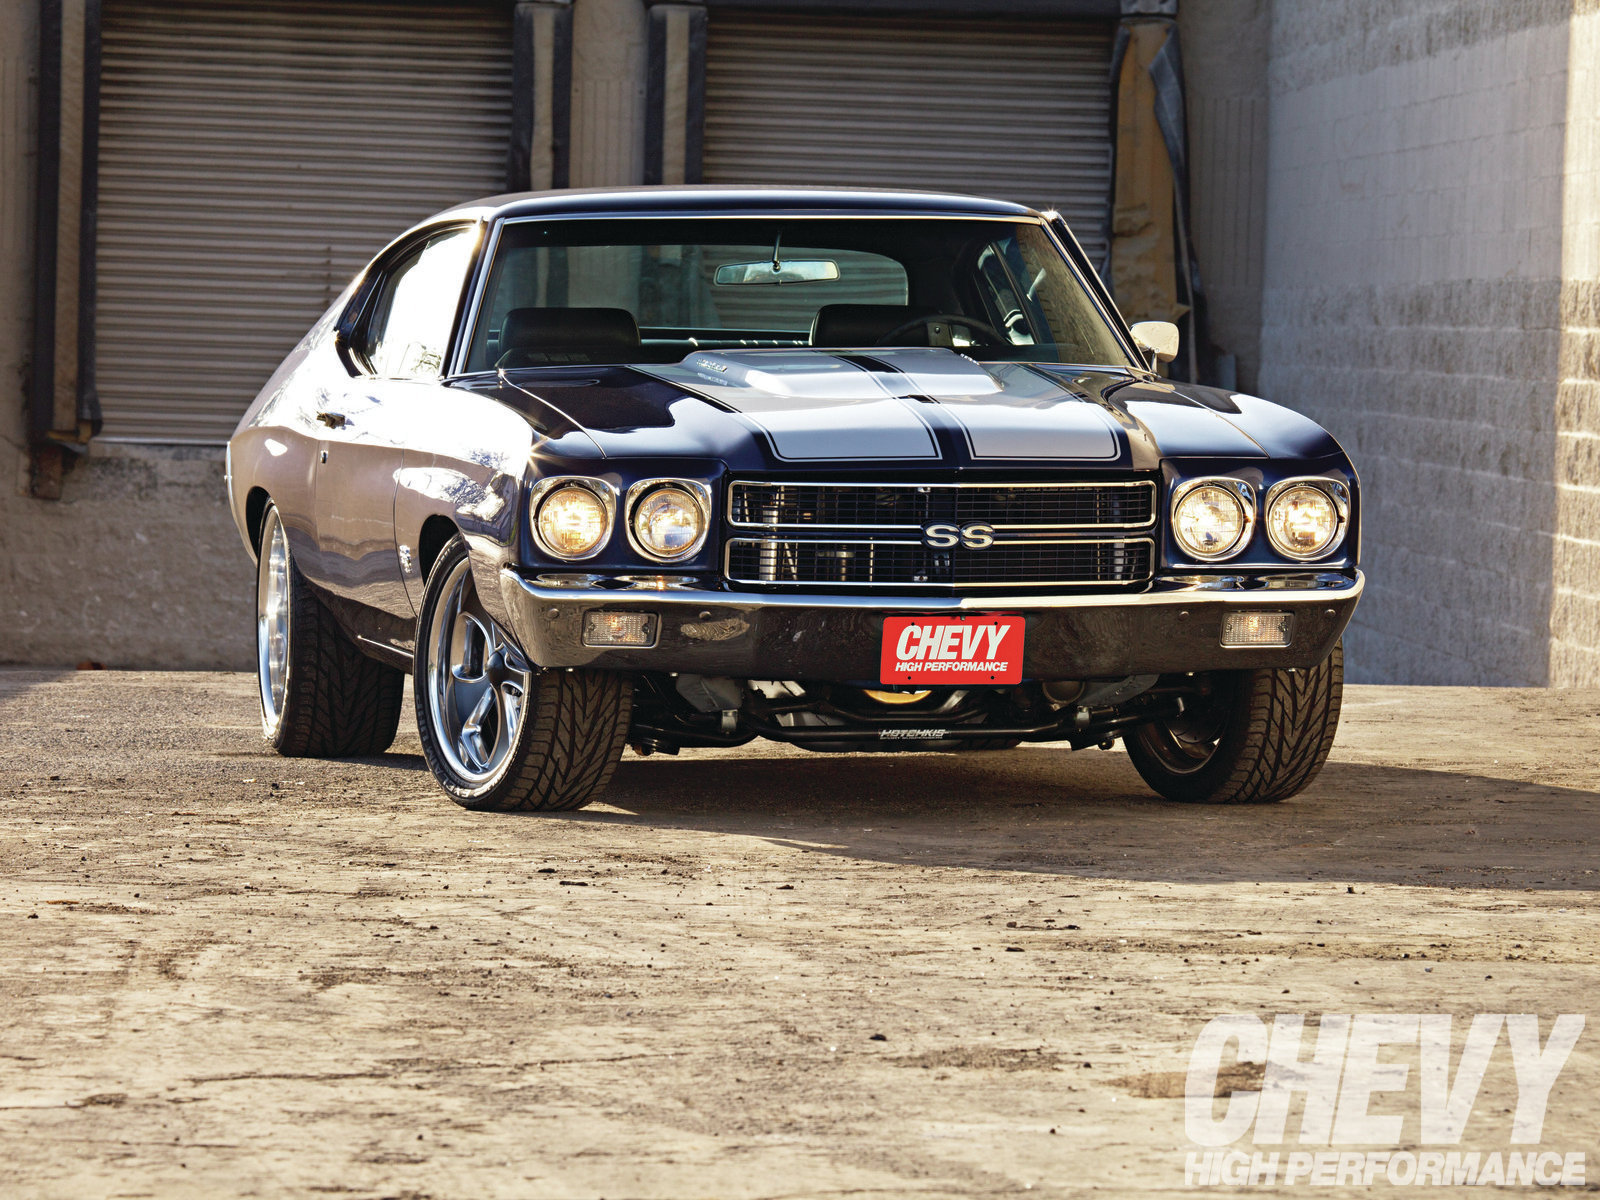 Pick up on this quite crazy chevelle you will adore and trip out!!